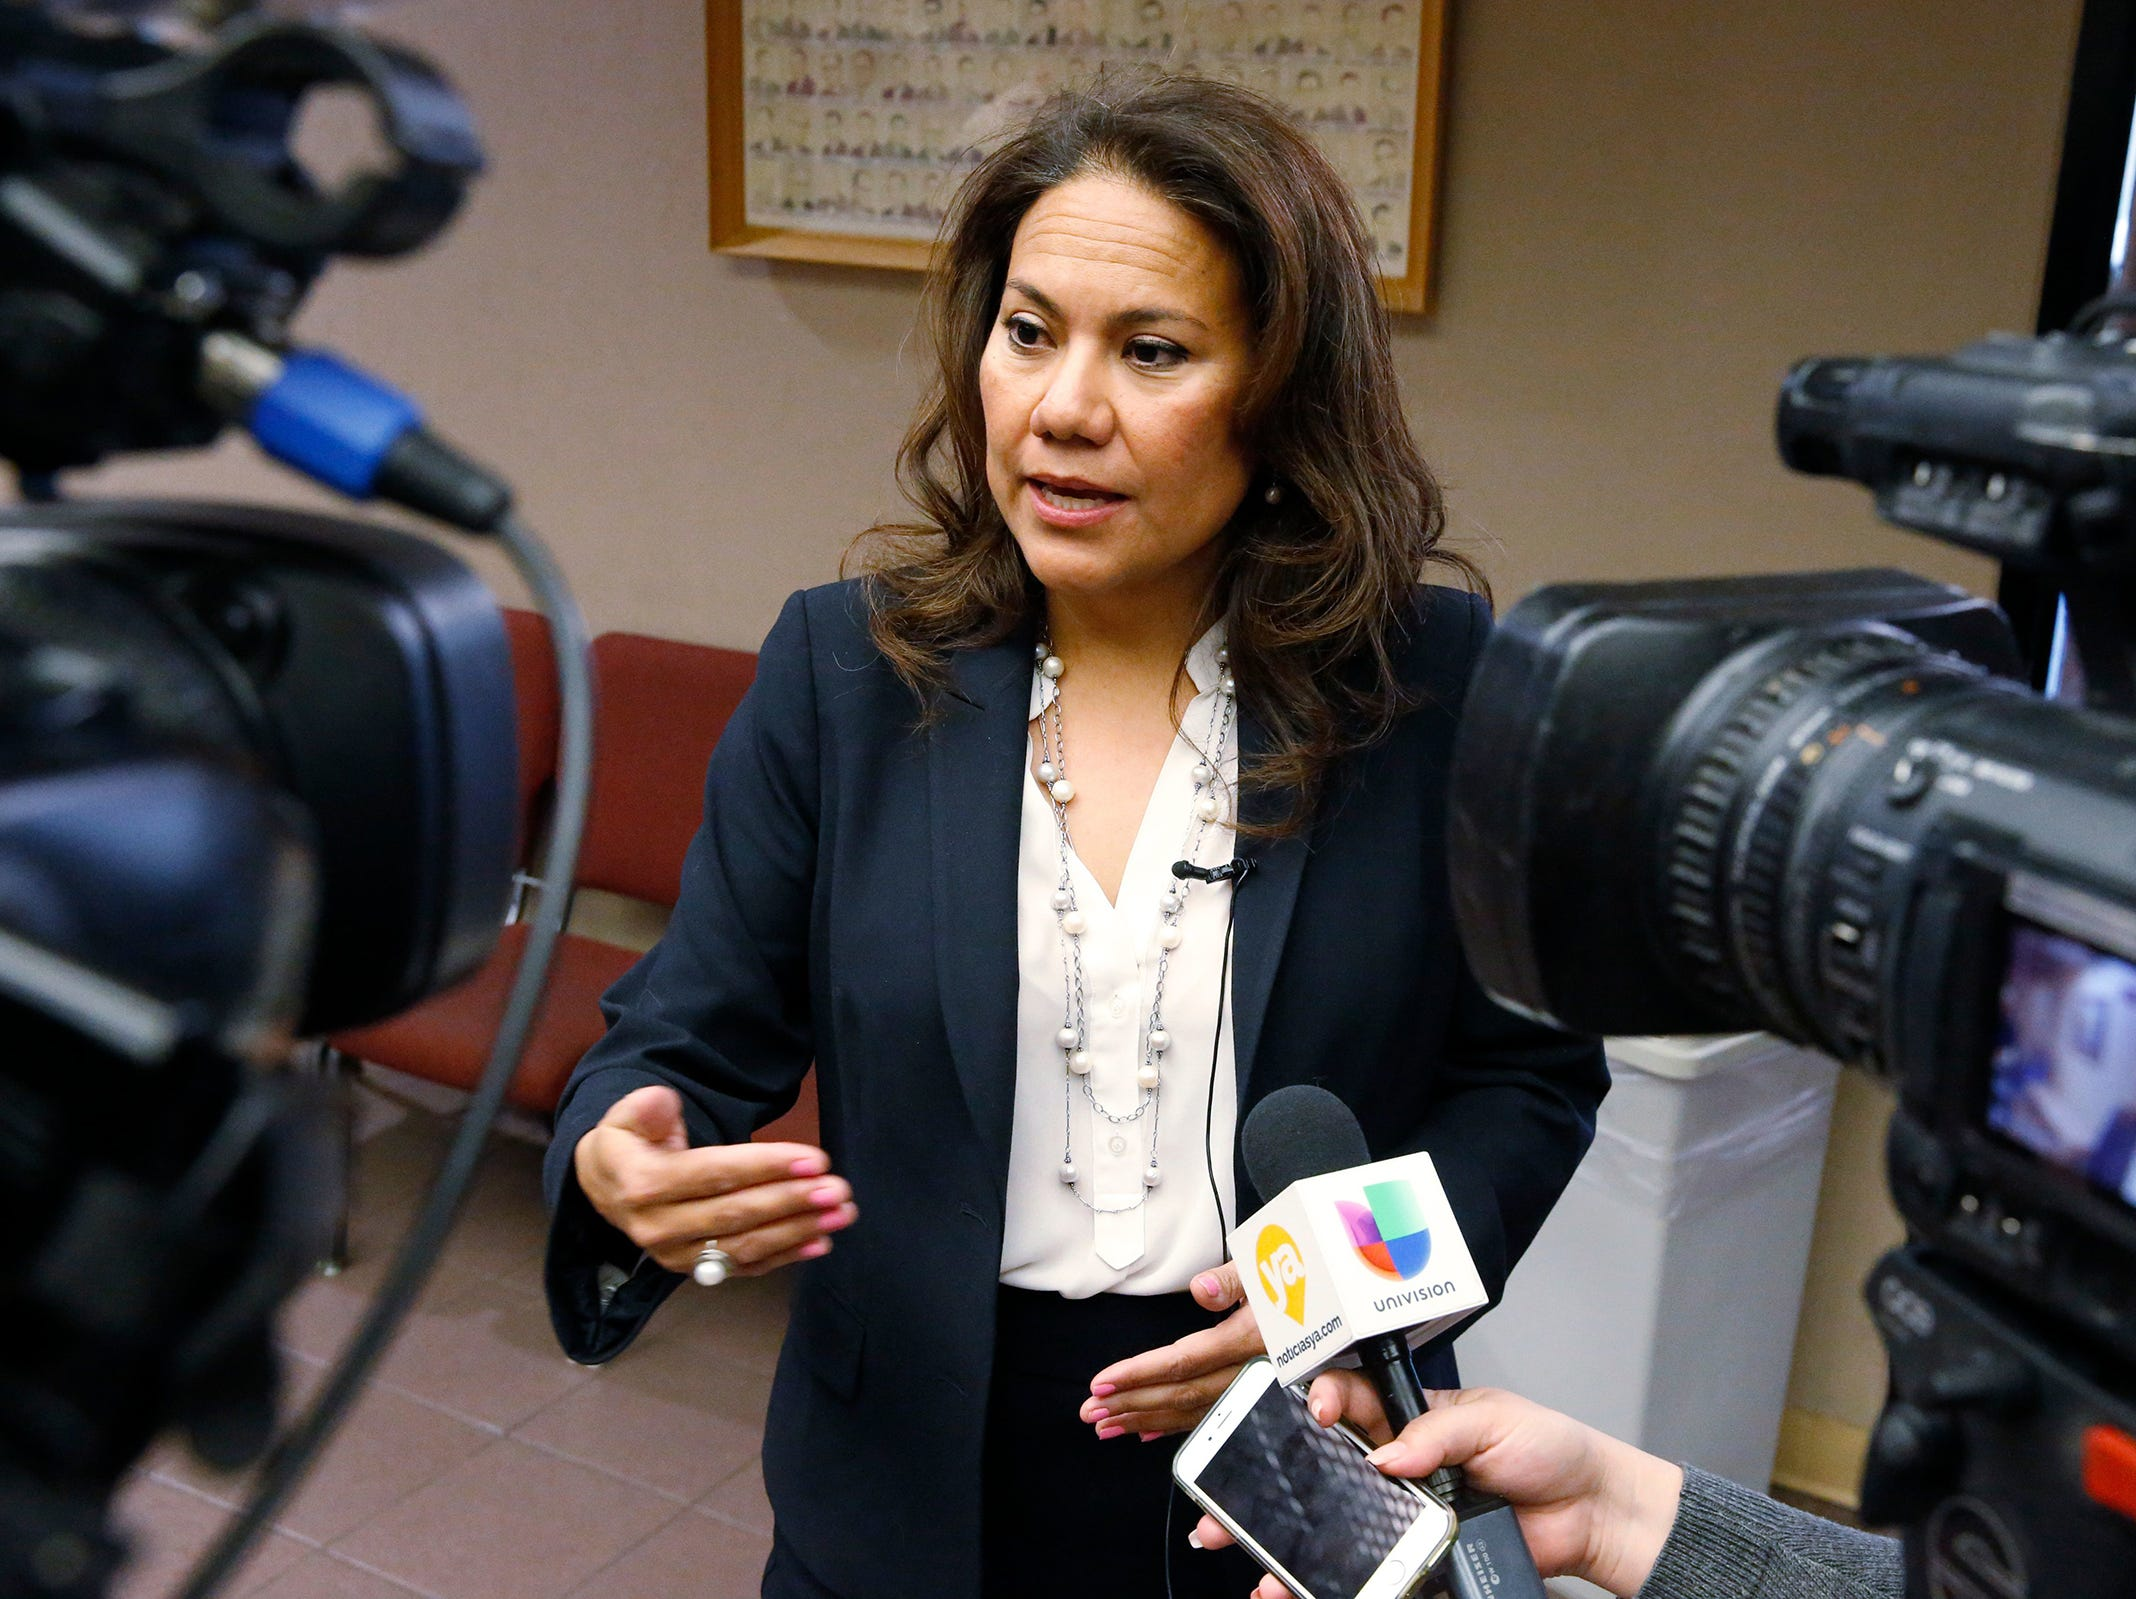 Former El Paso County Judge Veronica Escobar during a break of a county commisioners meeting answers questions from the media on oneof the agenda items.